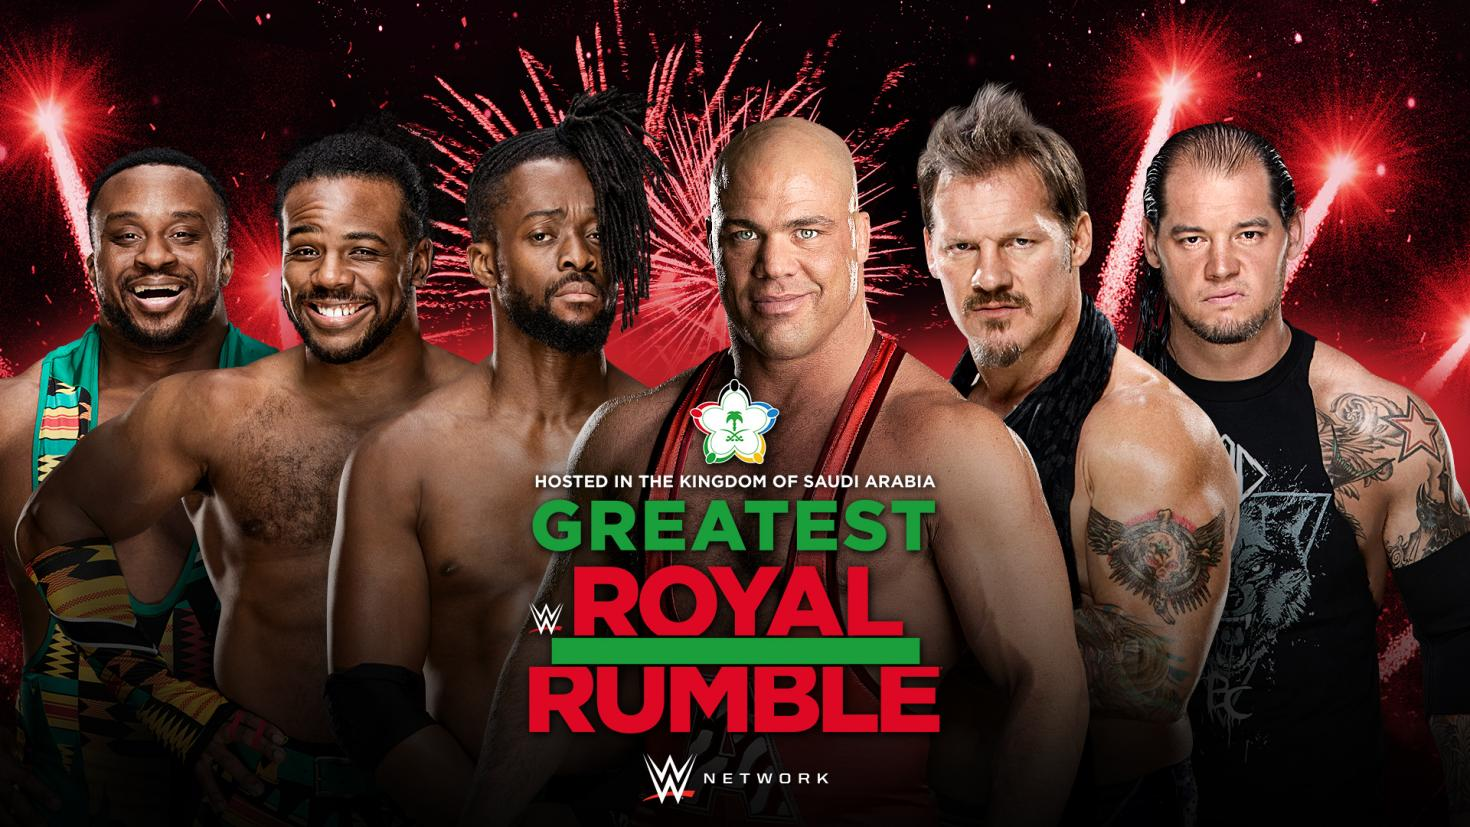 Chris Jericho, Kurt Angle set for WWE Greatest Royal Rumble https://t.co/Jaq3xx6oCB https://t.co/YnULhs31Am